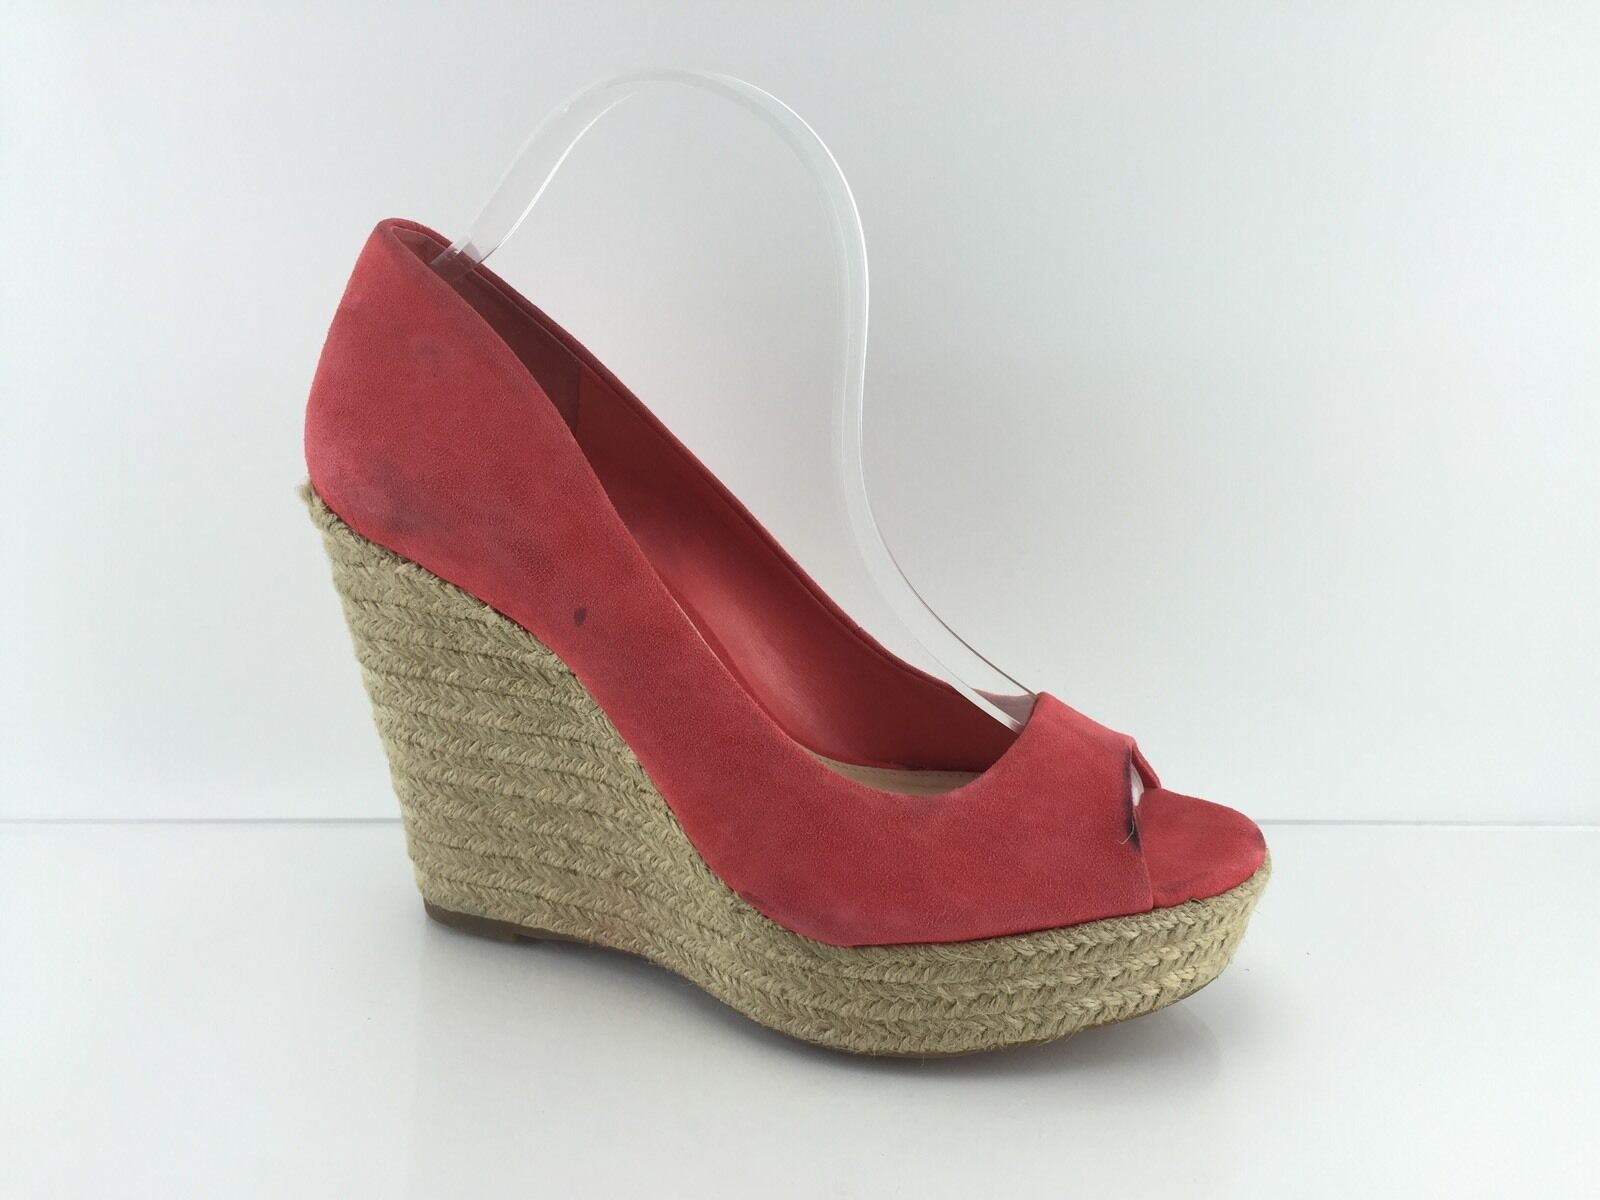 Vince Camuto Women's Red Suede Wedges 10 M